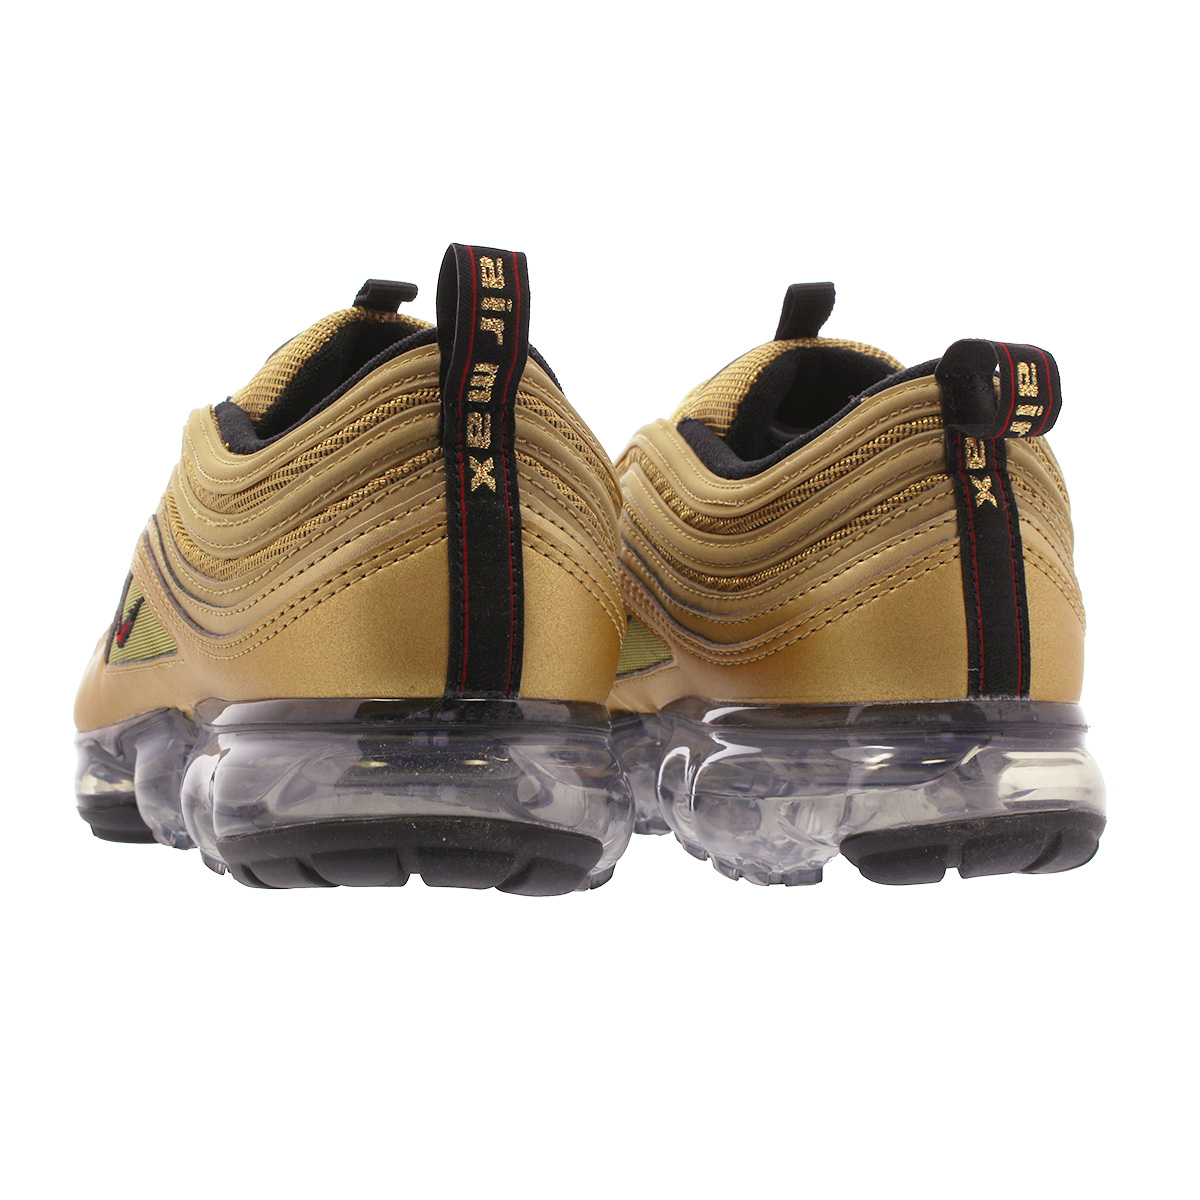 f0a45c13e6f8f NIKE AIR VAPORMAX 97 Nike air vapor max 97 METALLIC GOLD VARSITY RED BLACK WHITE  aj7291-700